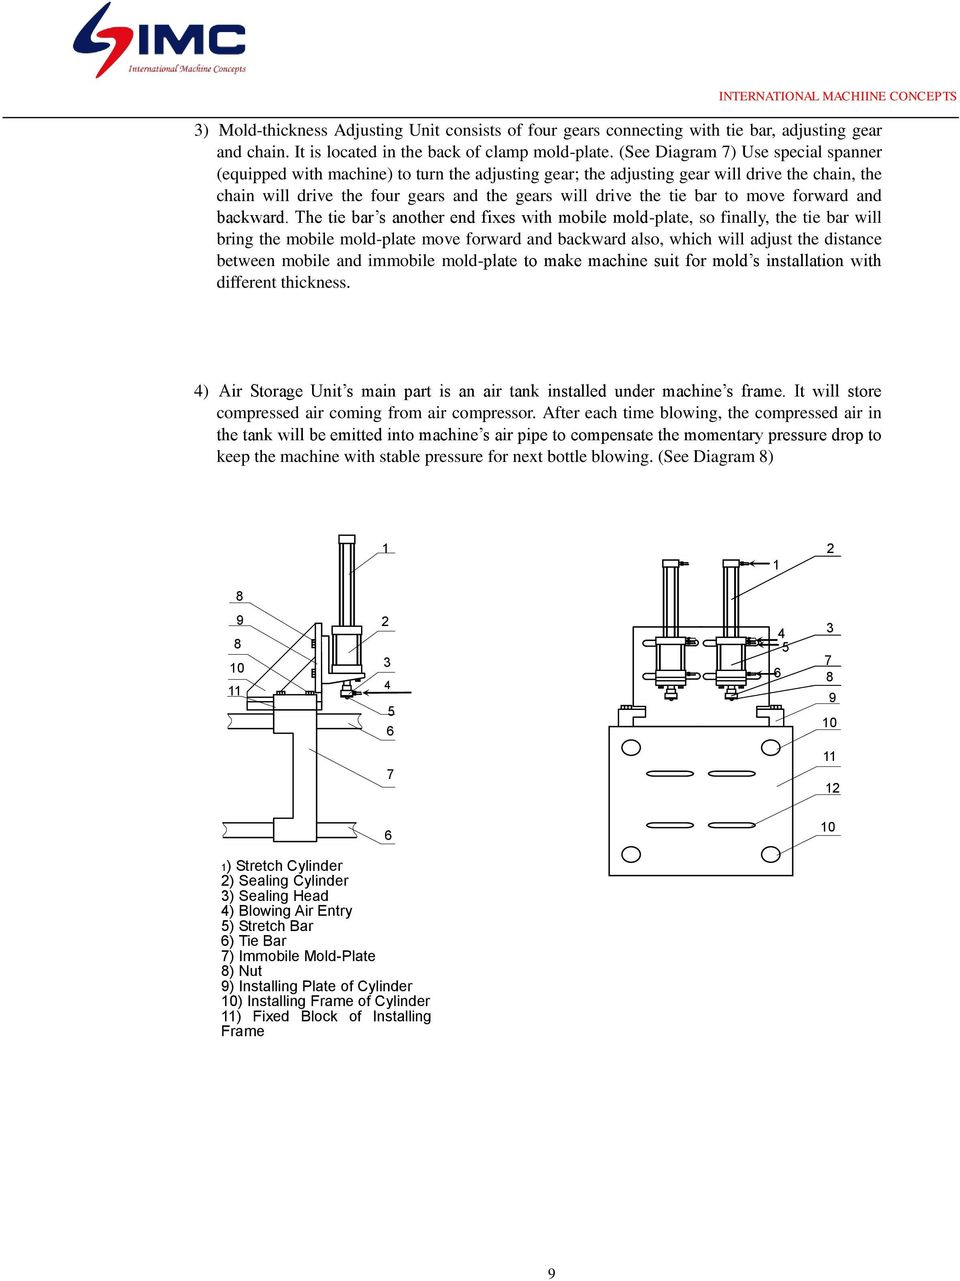 International Machiine Concepts Pdf Pressure Tank Installation Diagram Bar To Move Forward And Backward